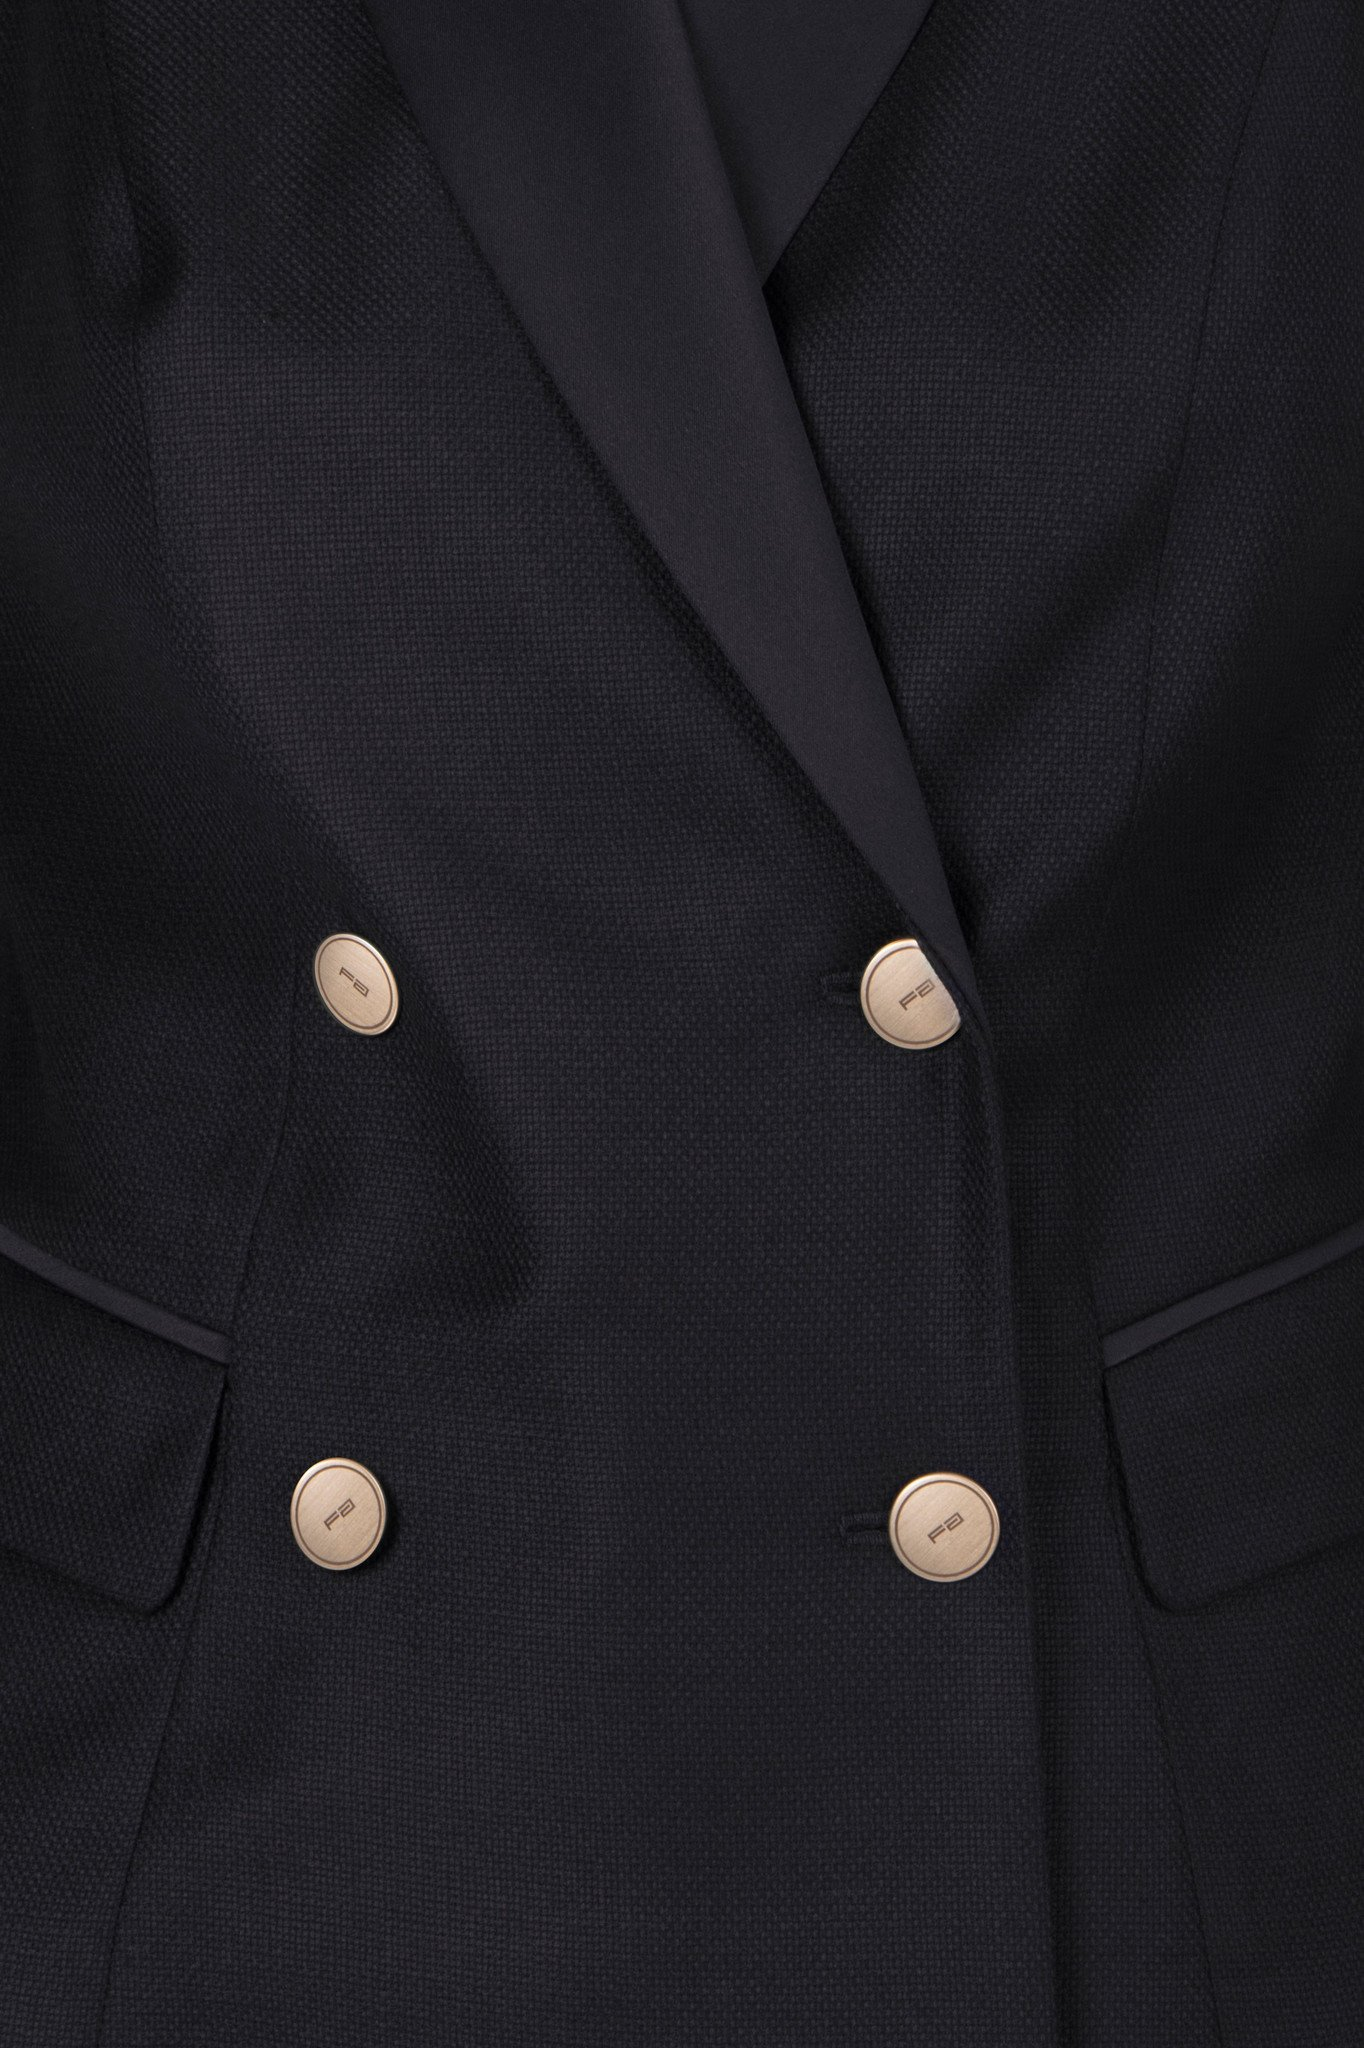 Double Trouble: Double-Breasted Wool Jacket